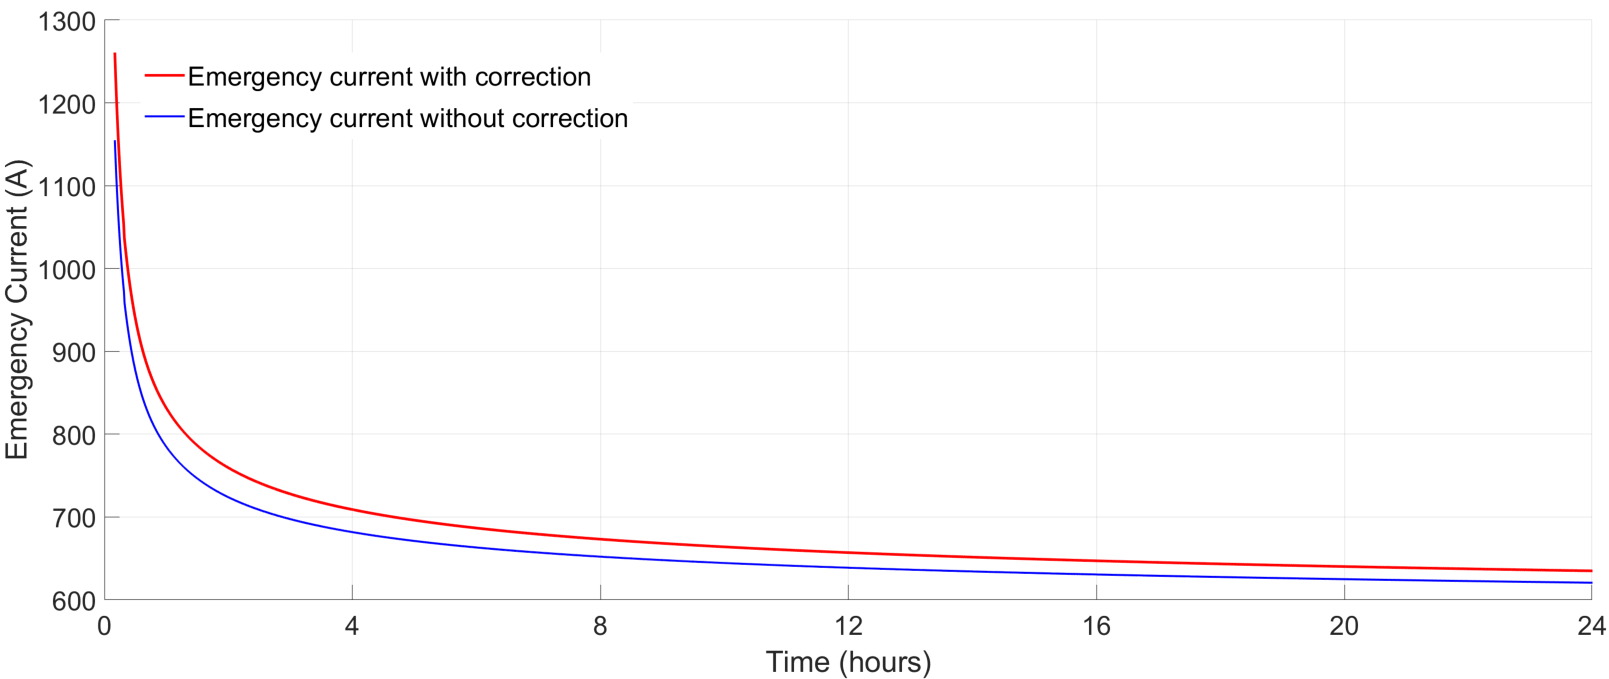 Fig. 12 – Variation of emergency current with and without correction factor